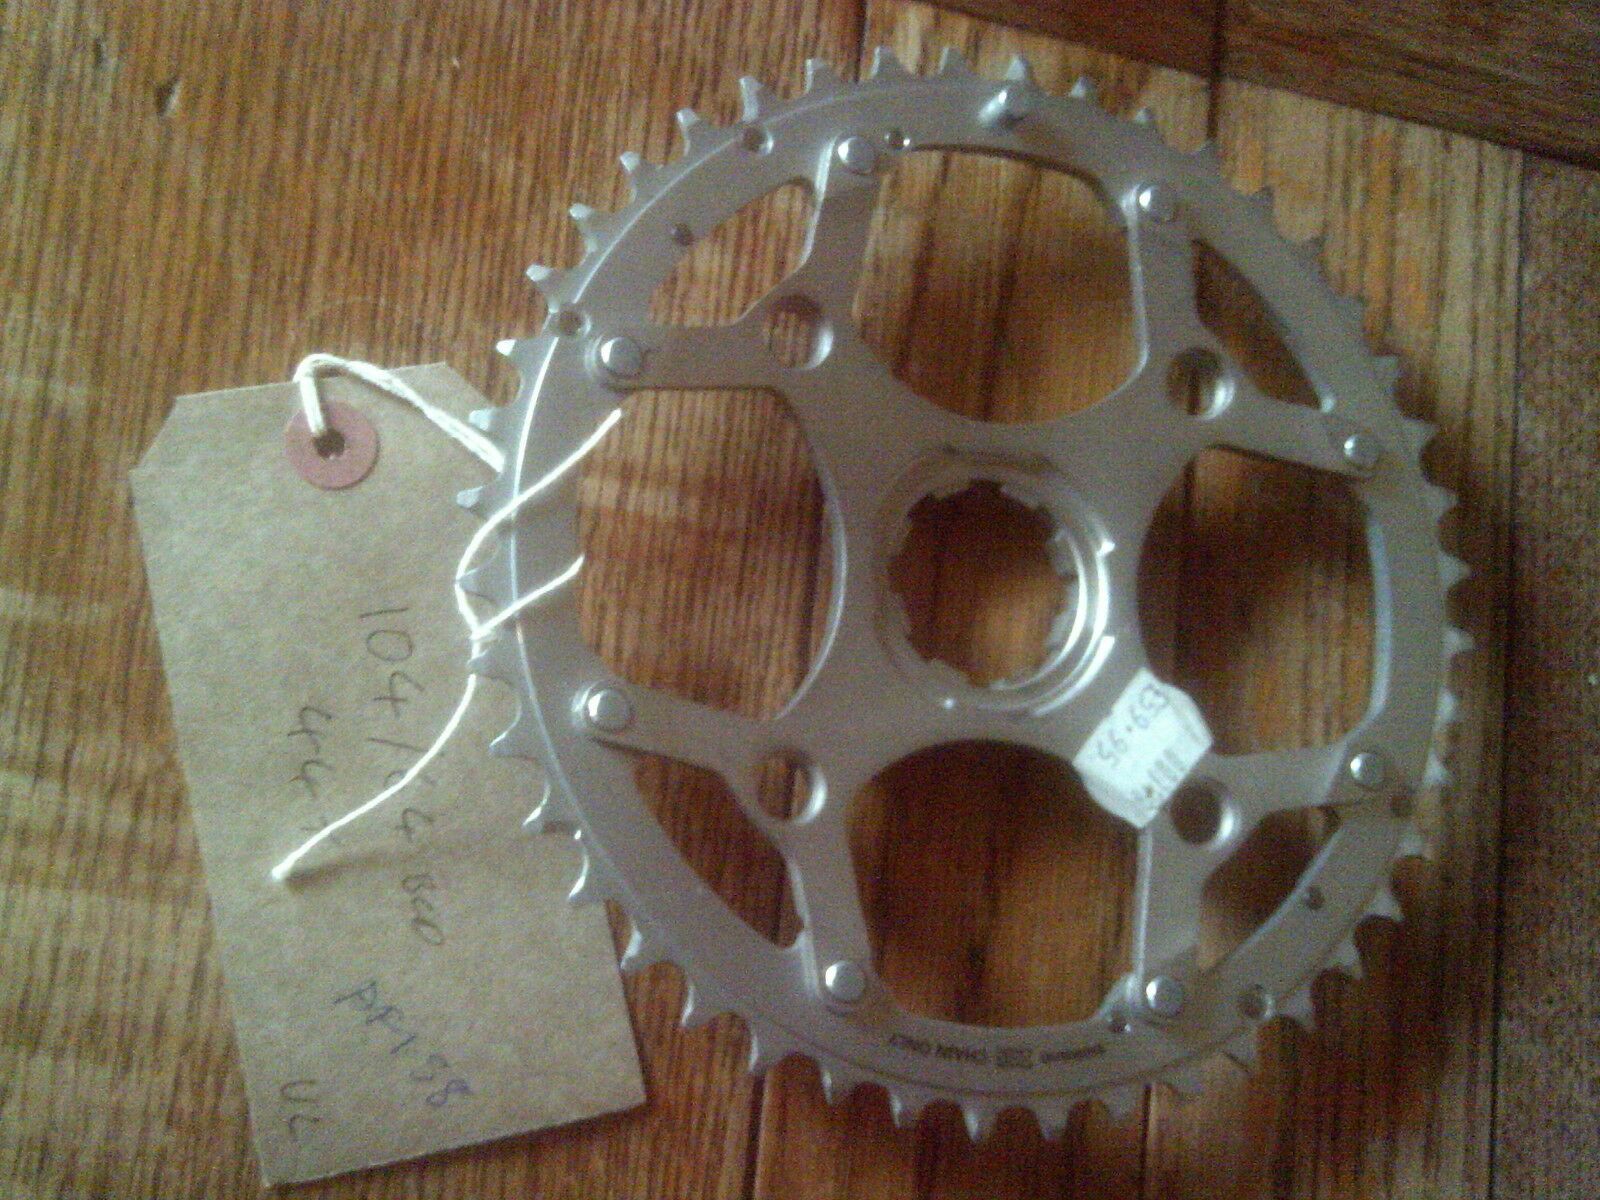 NOS 44 TOOTH 104 64BCD SHIMANO XTR SPLINED  CHAINRING, 1996 XTR